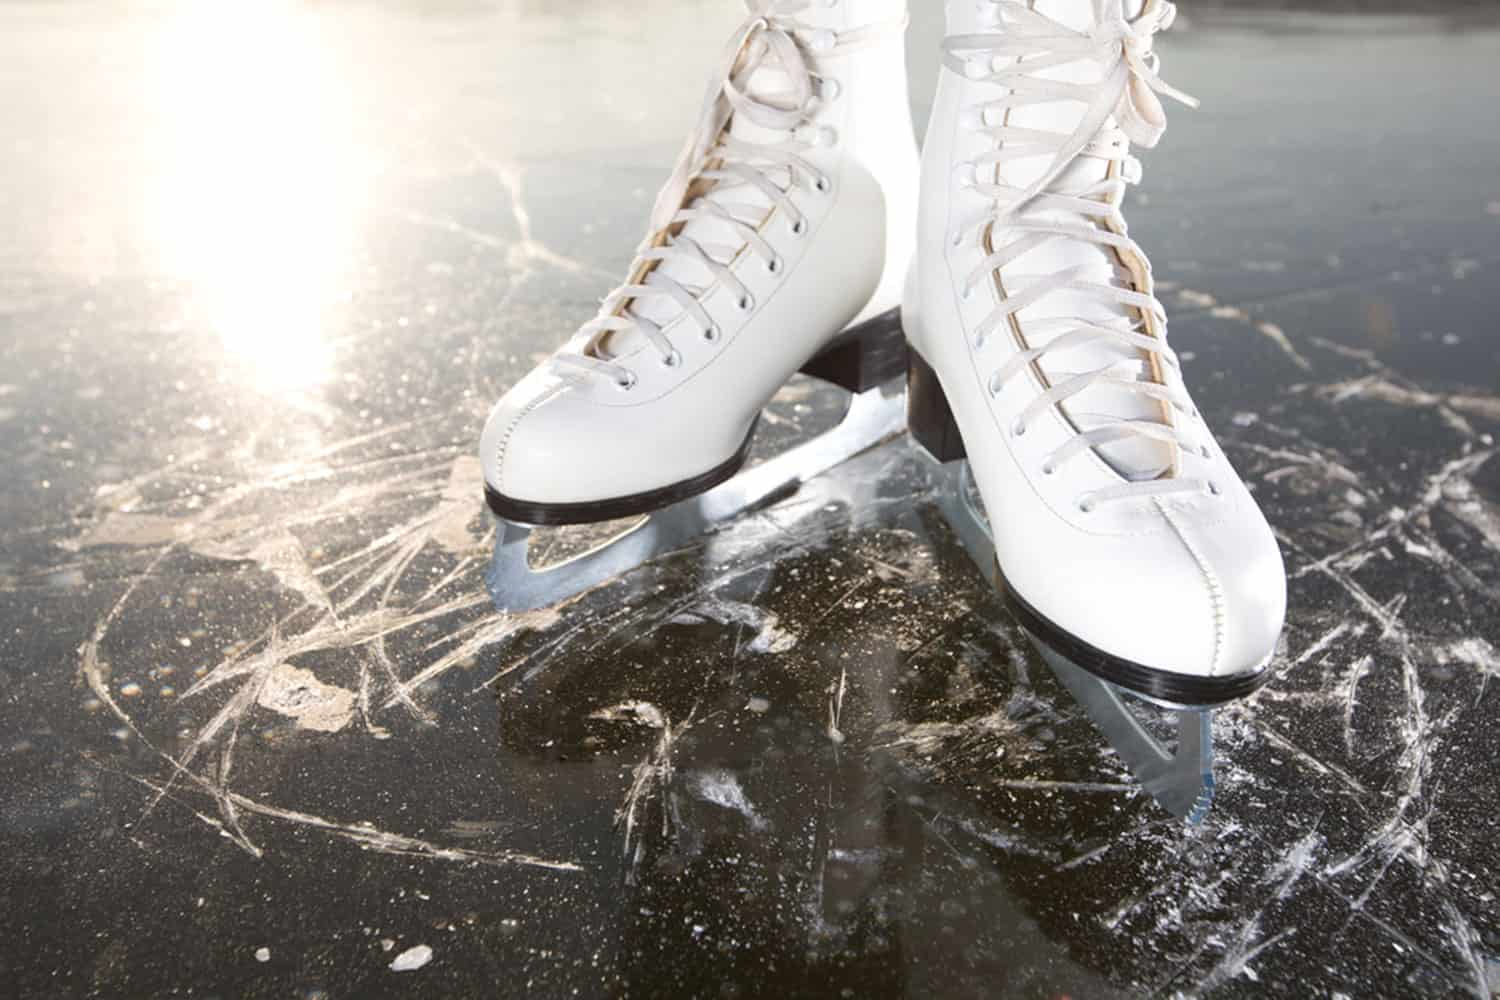 Do You Know What is Figure Skating?